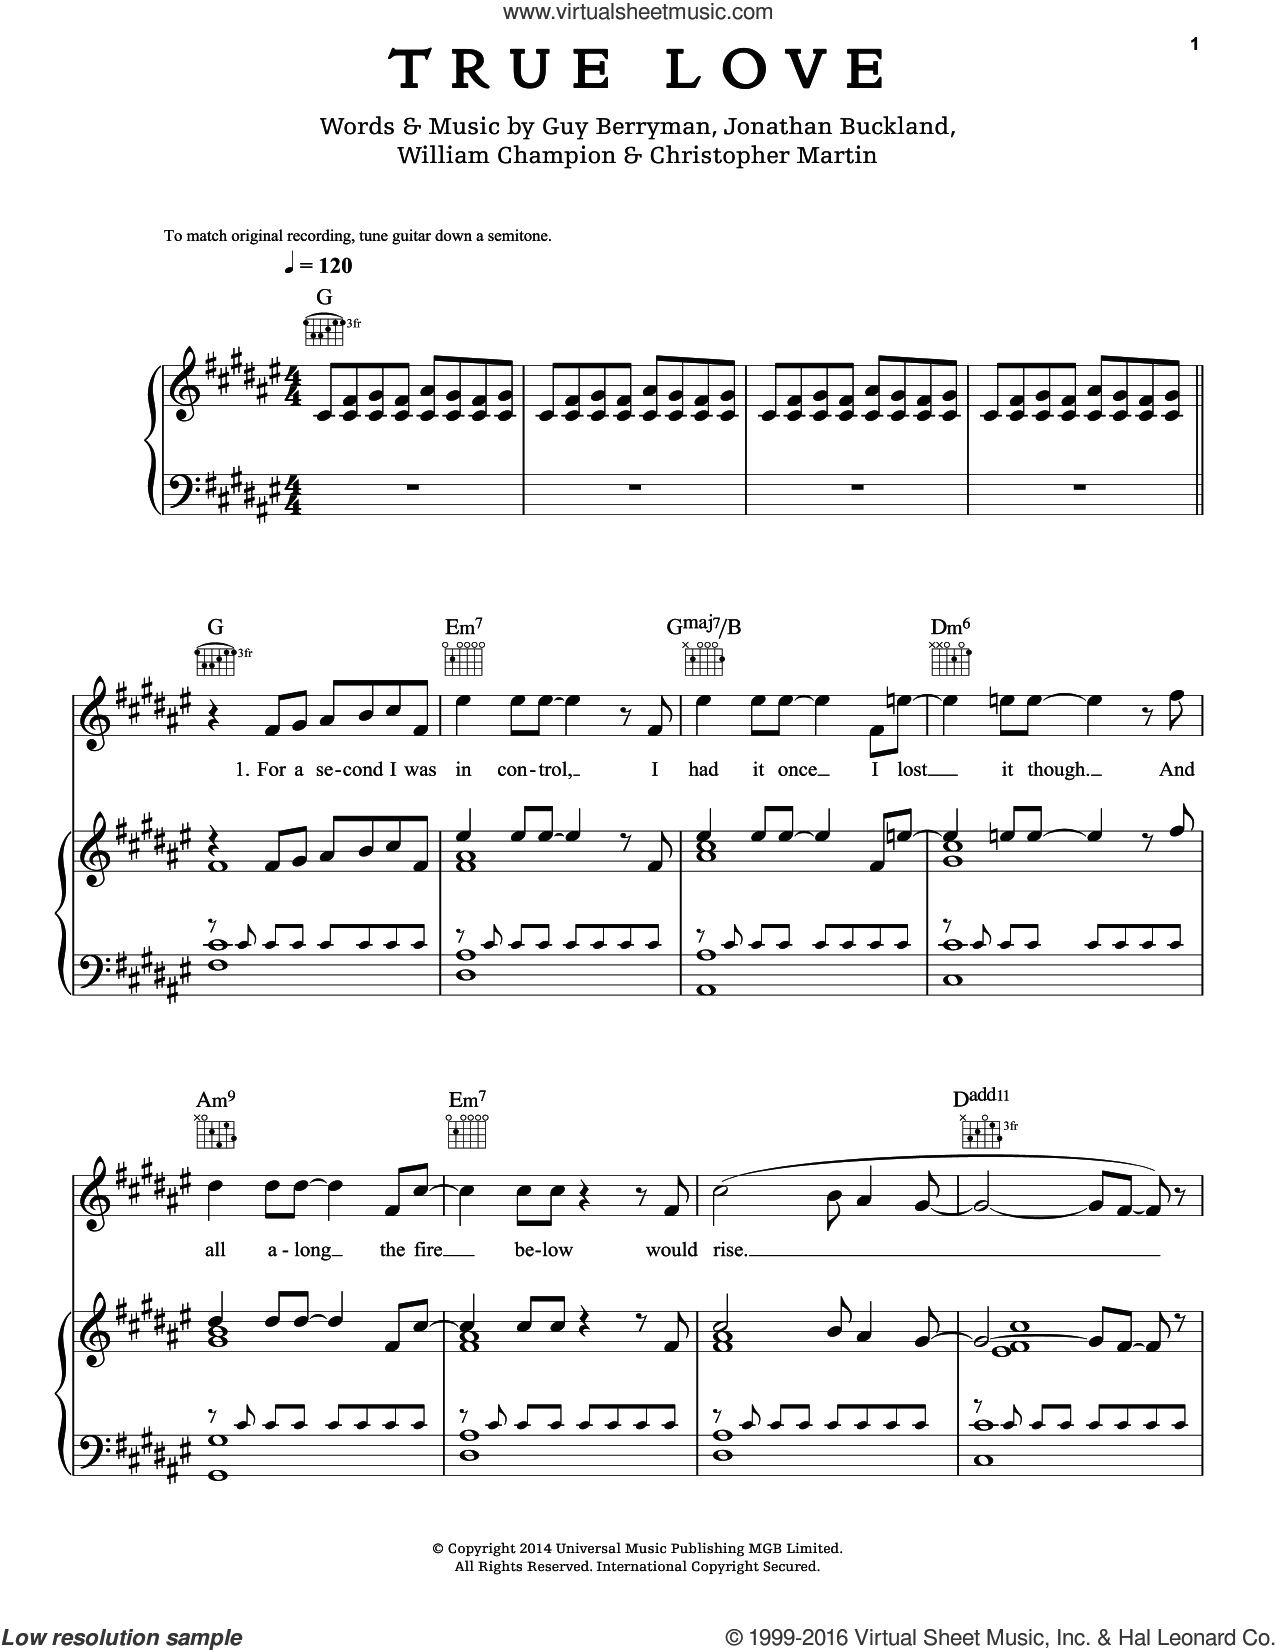 True Love sheet music for voice, piano or guitar by Will Champion, Coldplay, Chris Martin, Guy Berryman and Jon Buckland. Score Image Preview.